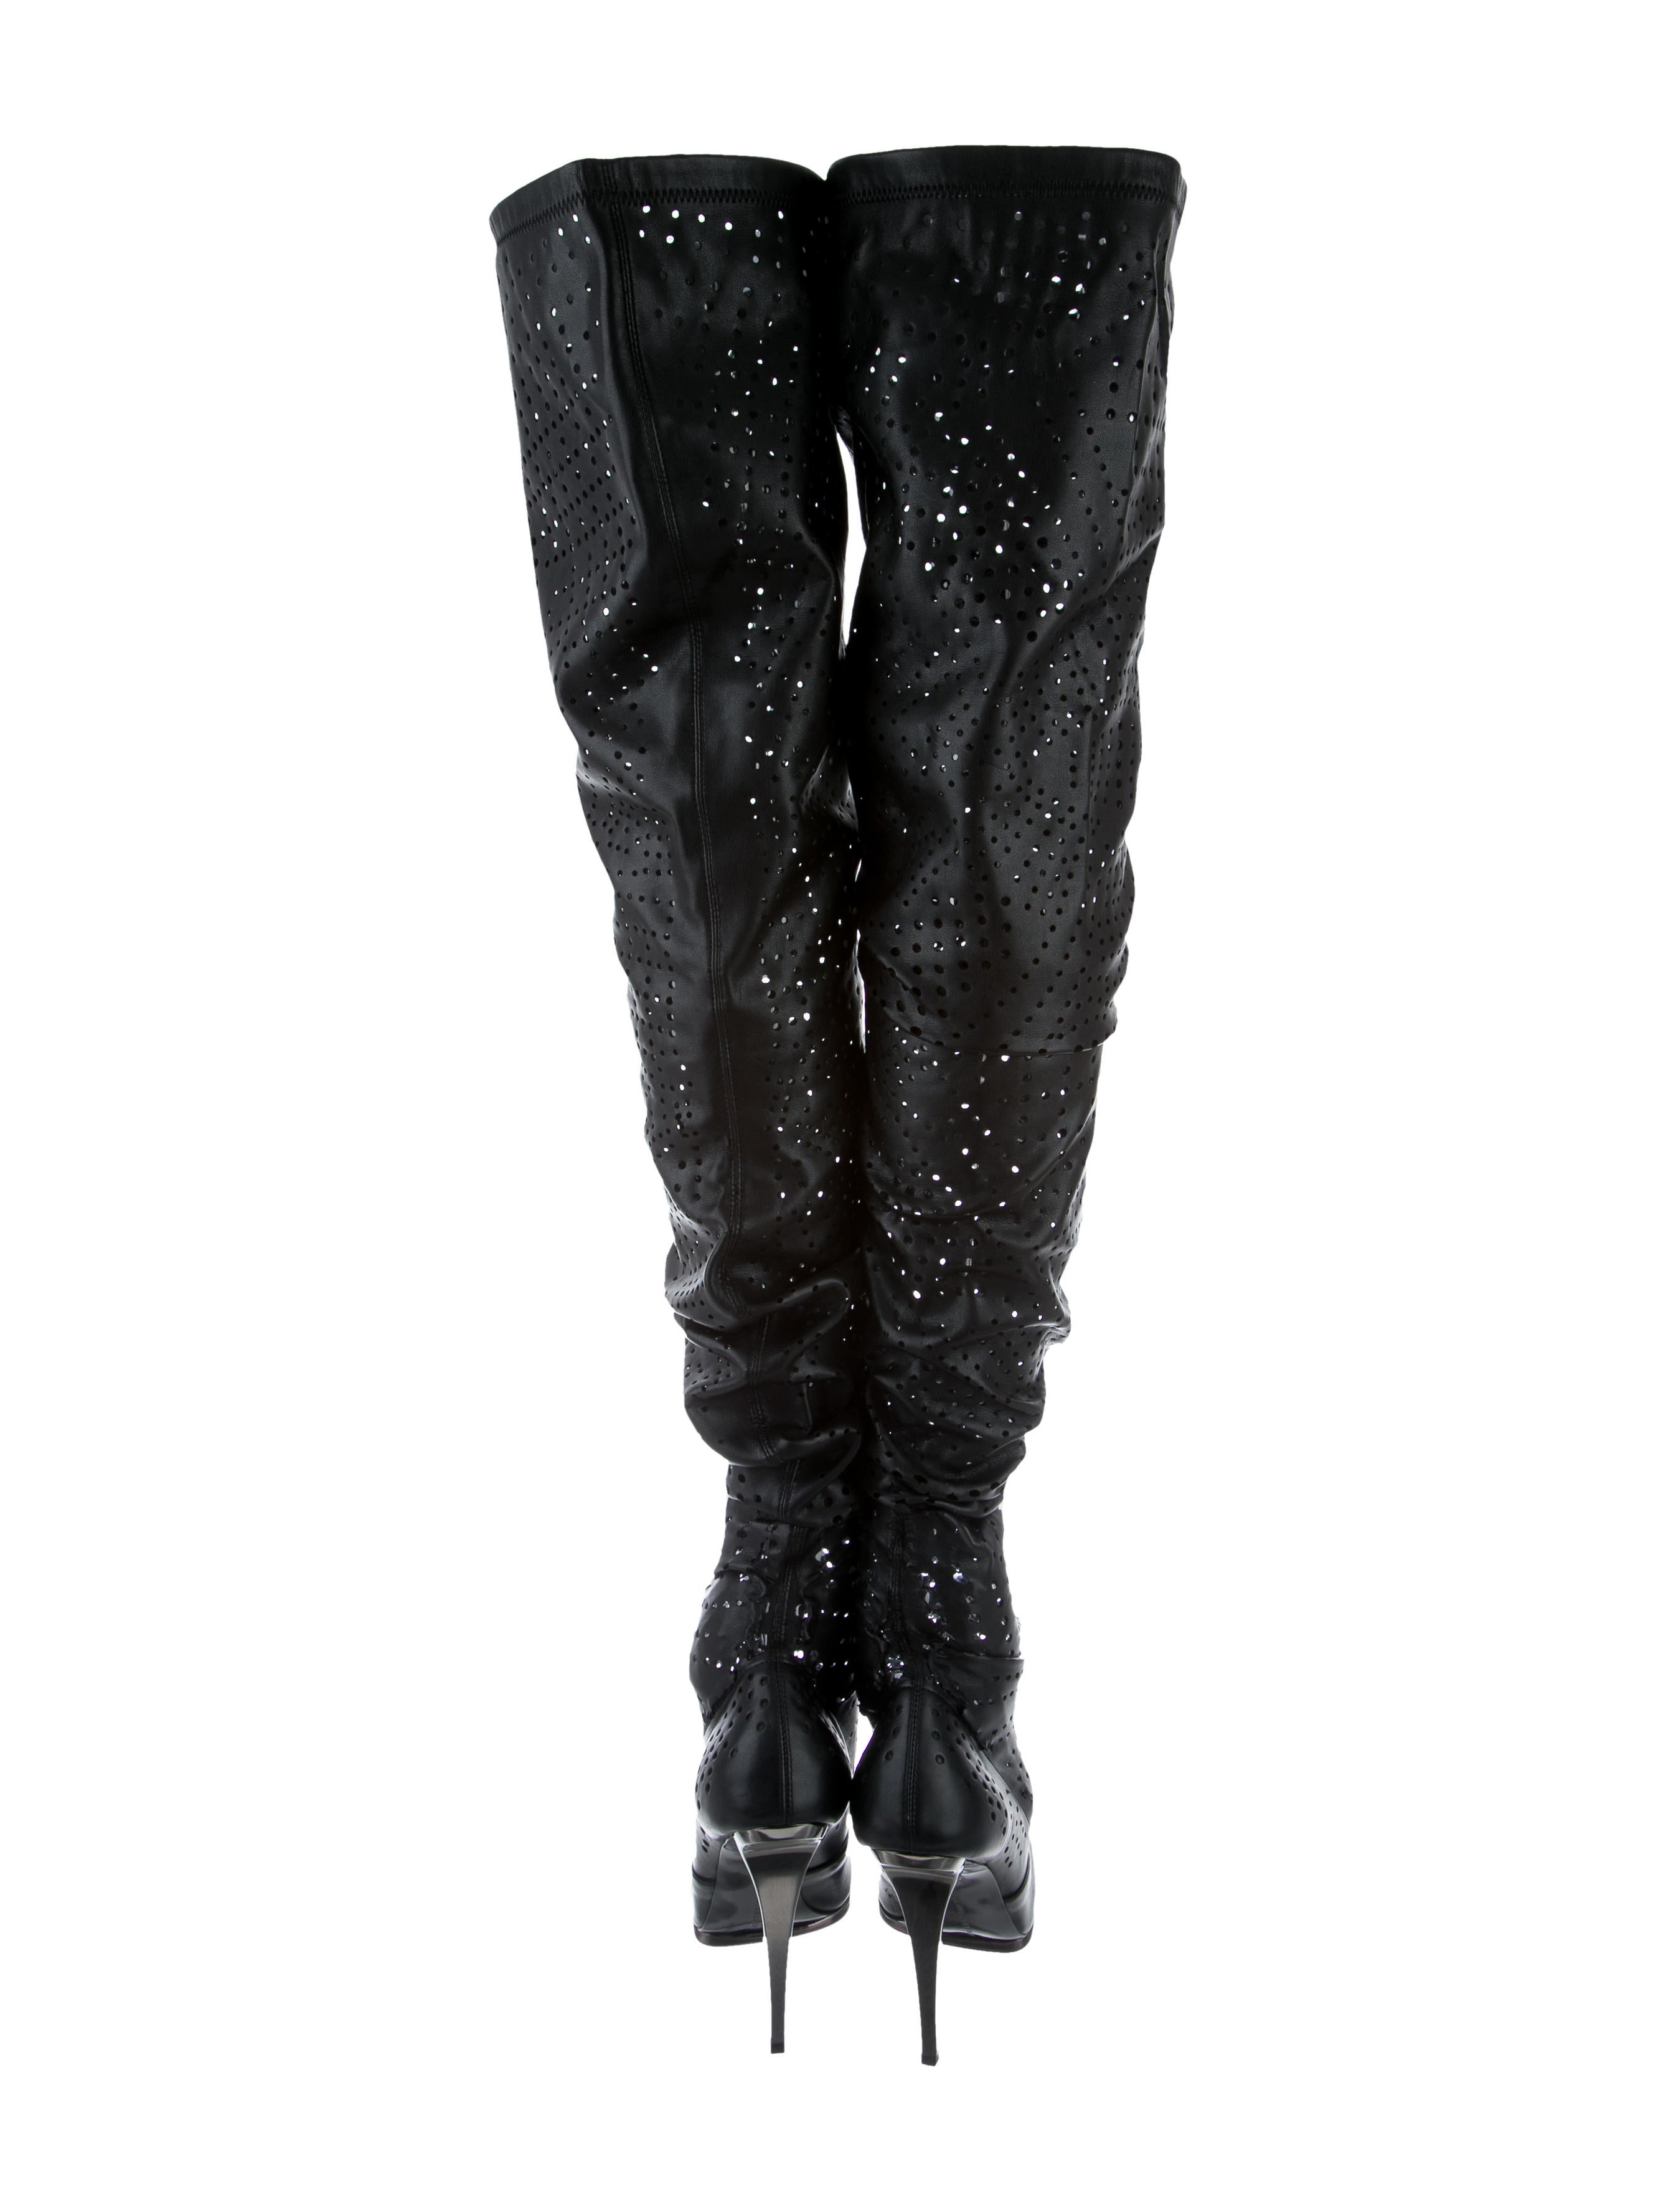 stella mccartney perforated the knee boots shoes